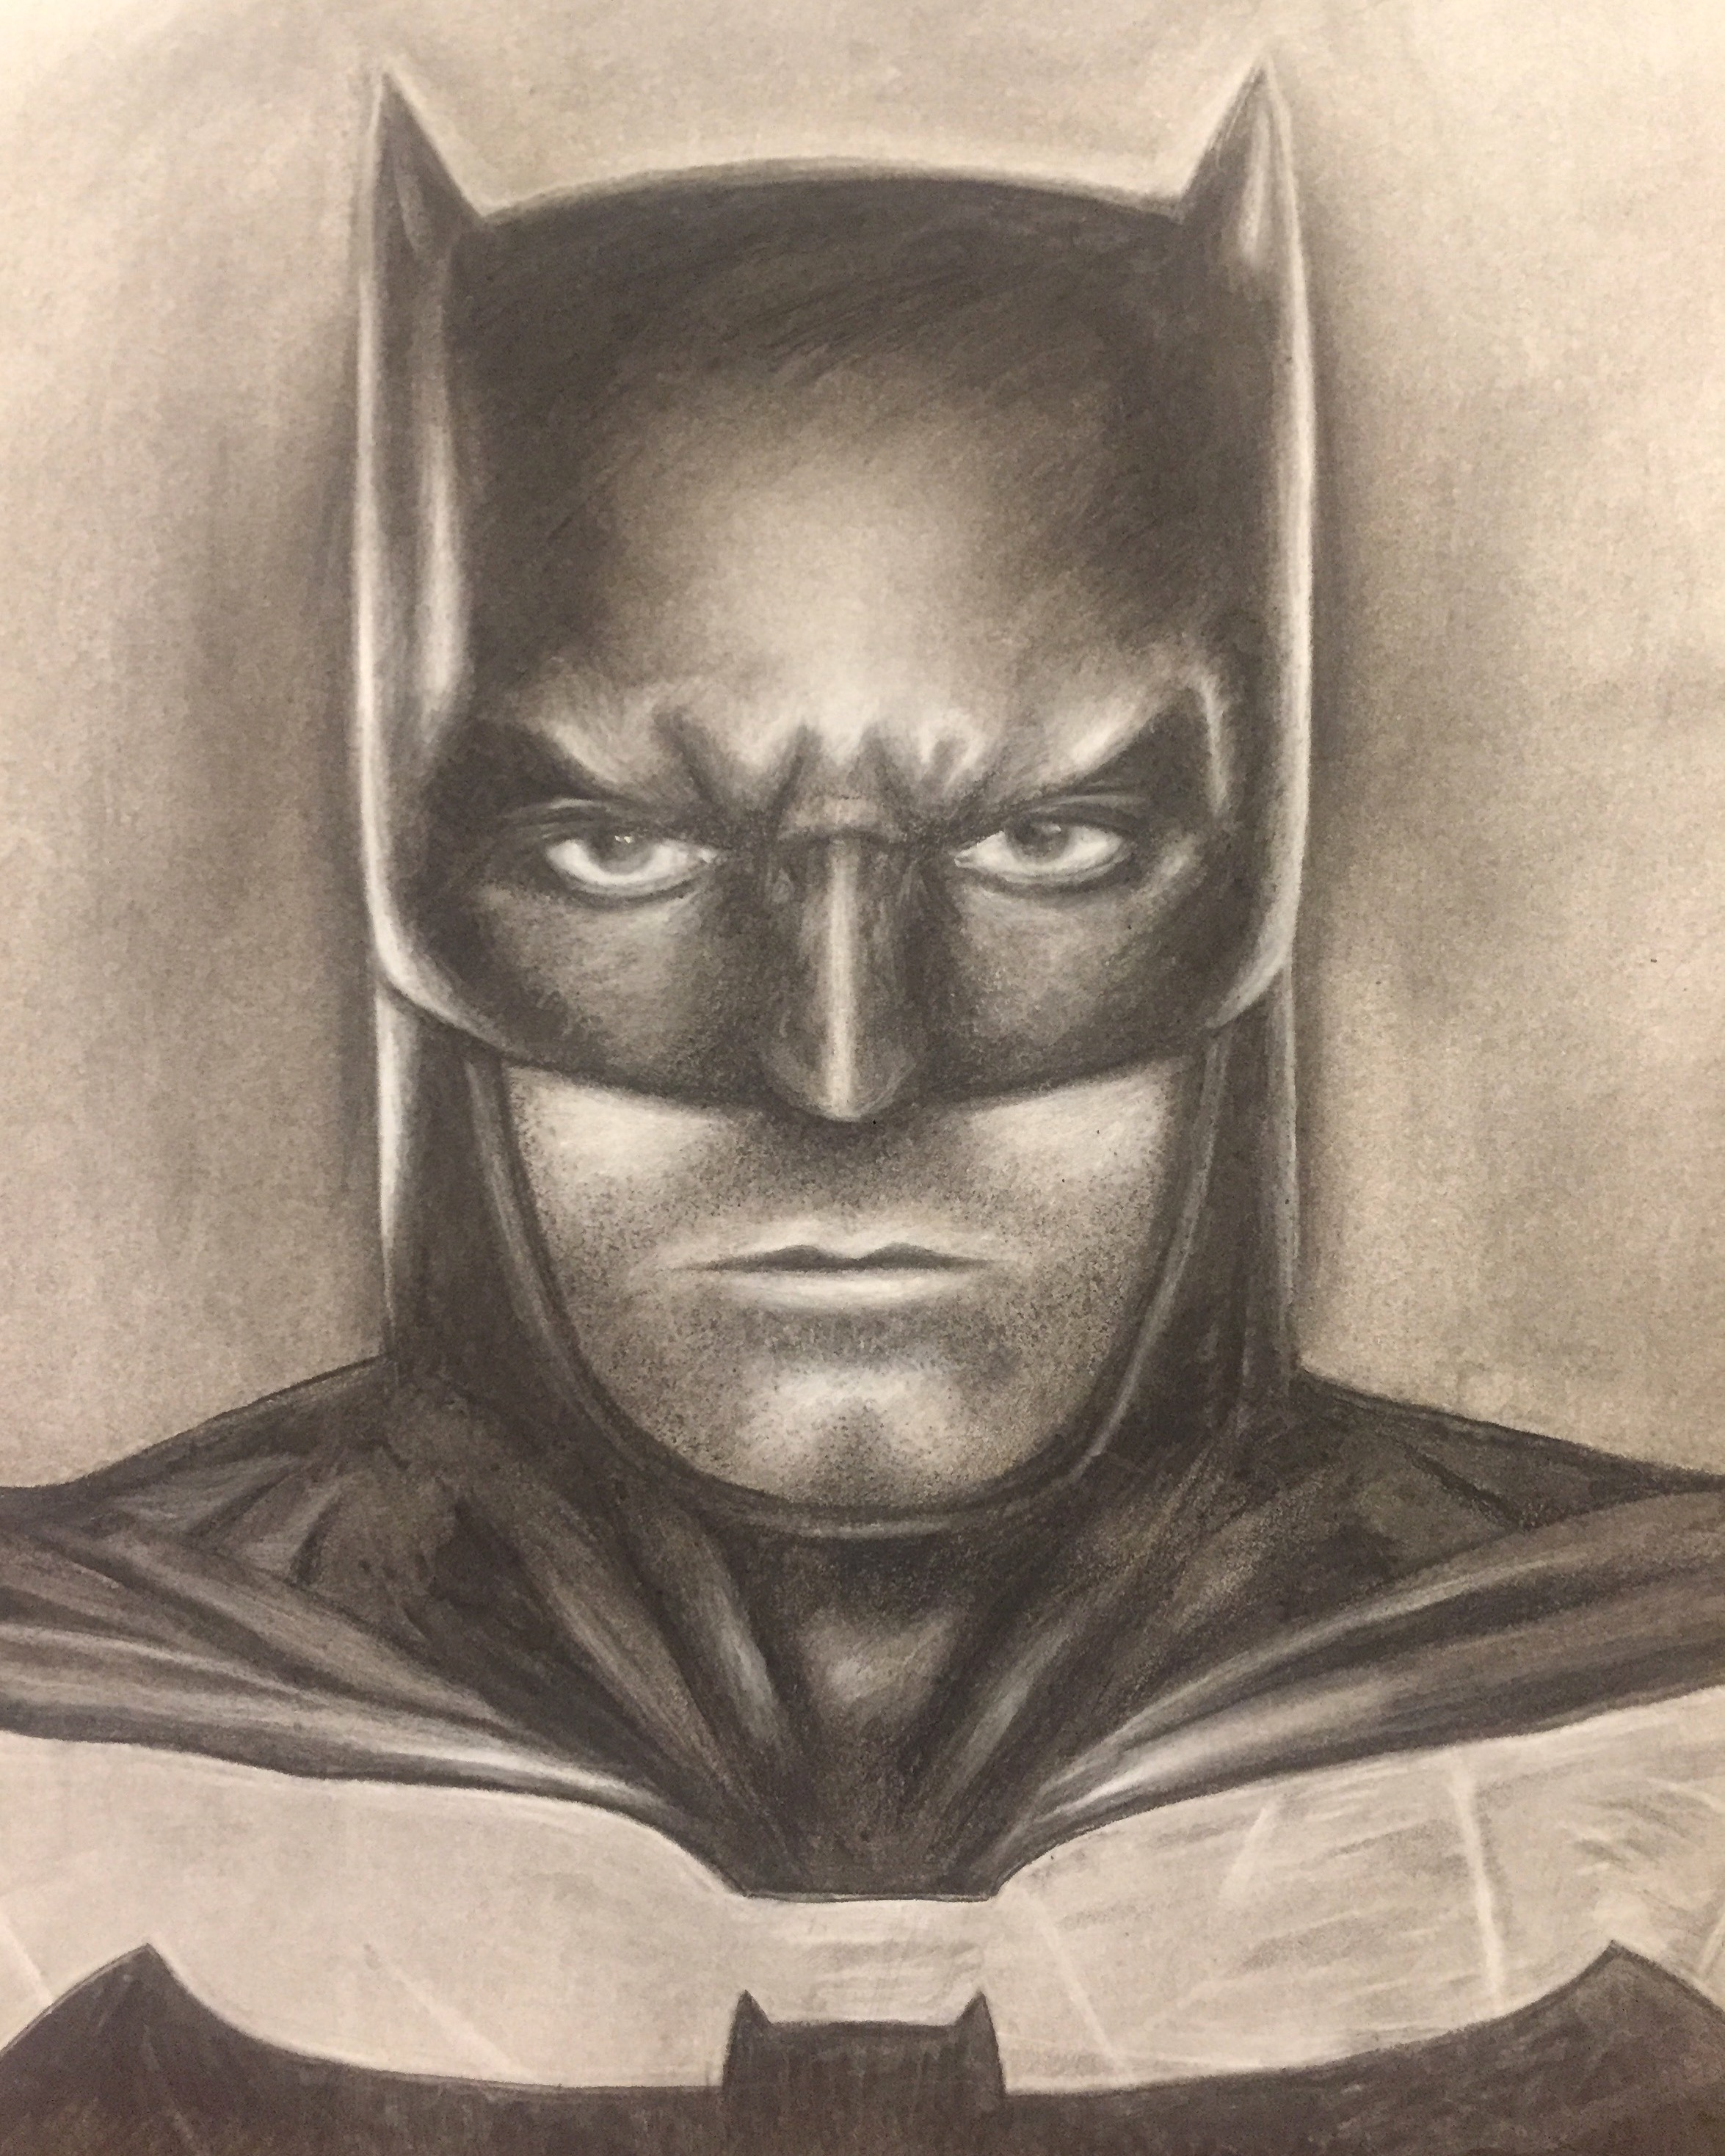 Batman Headshot